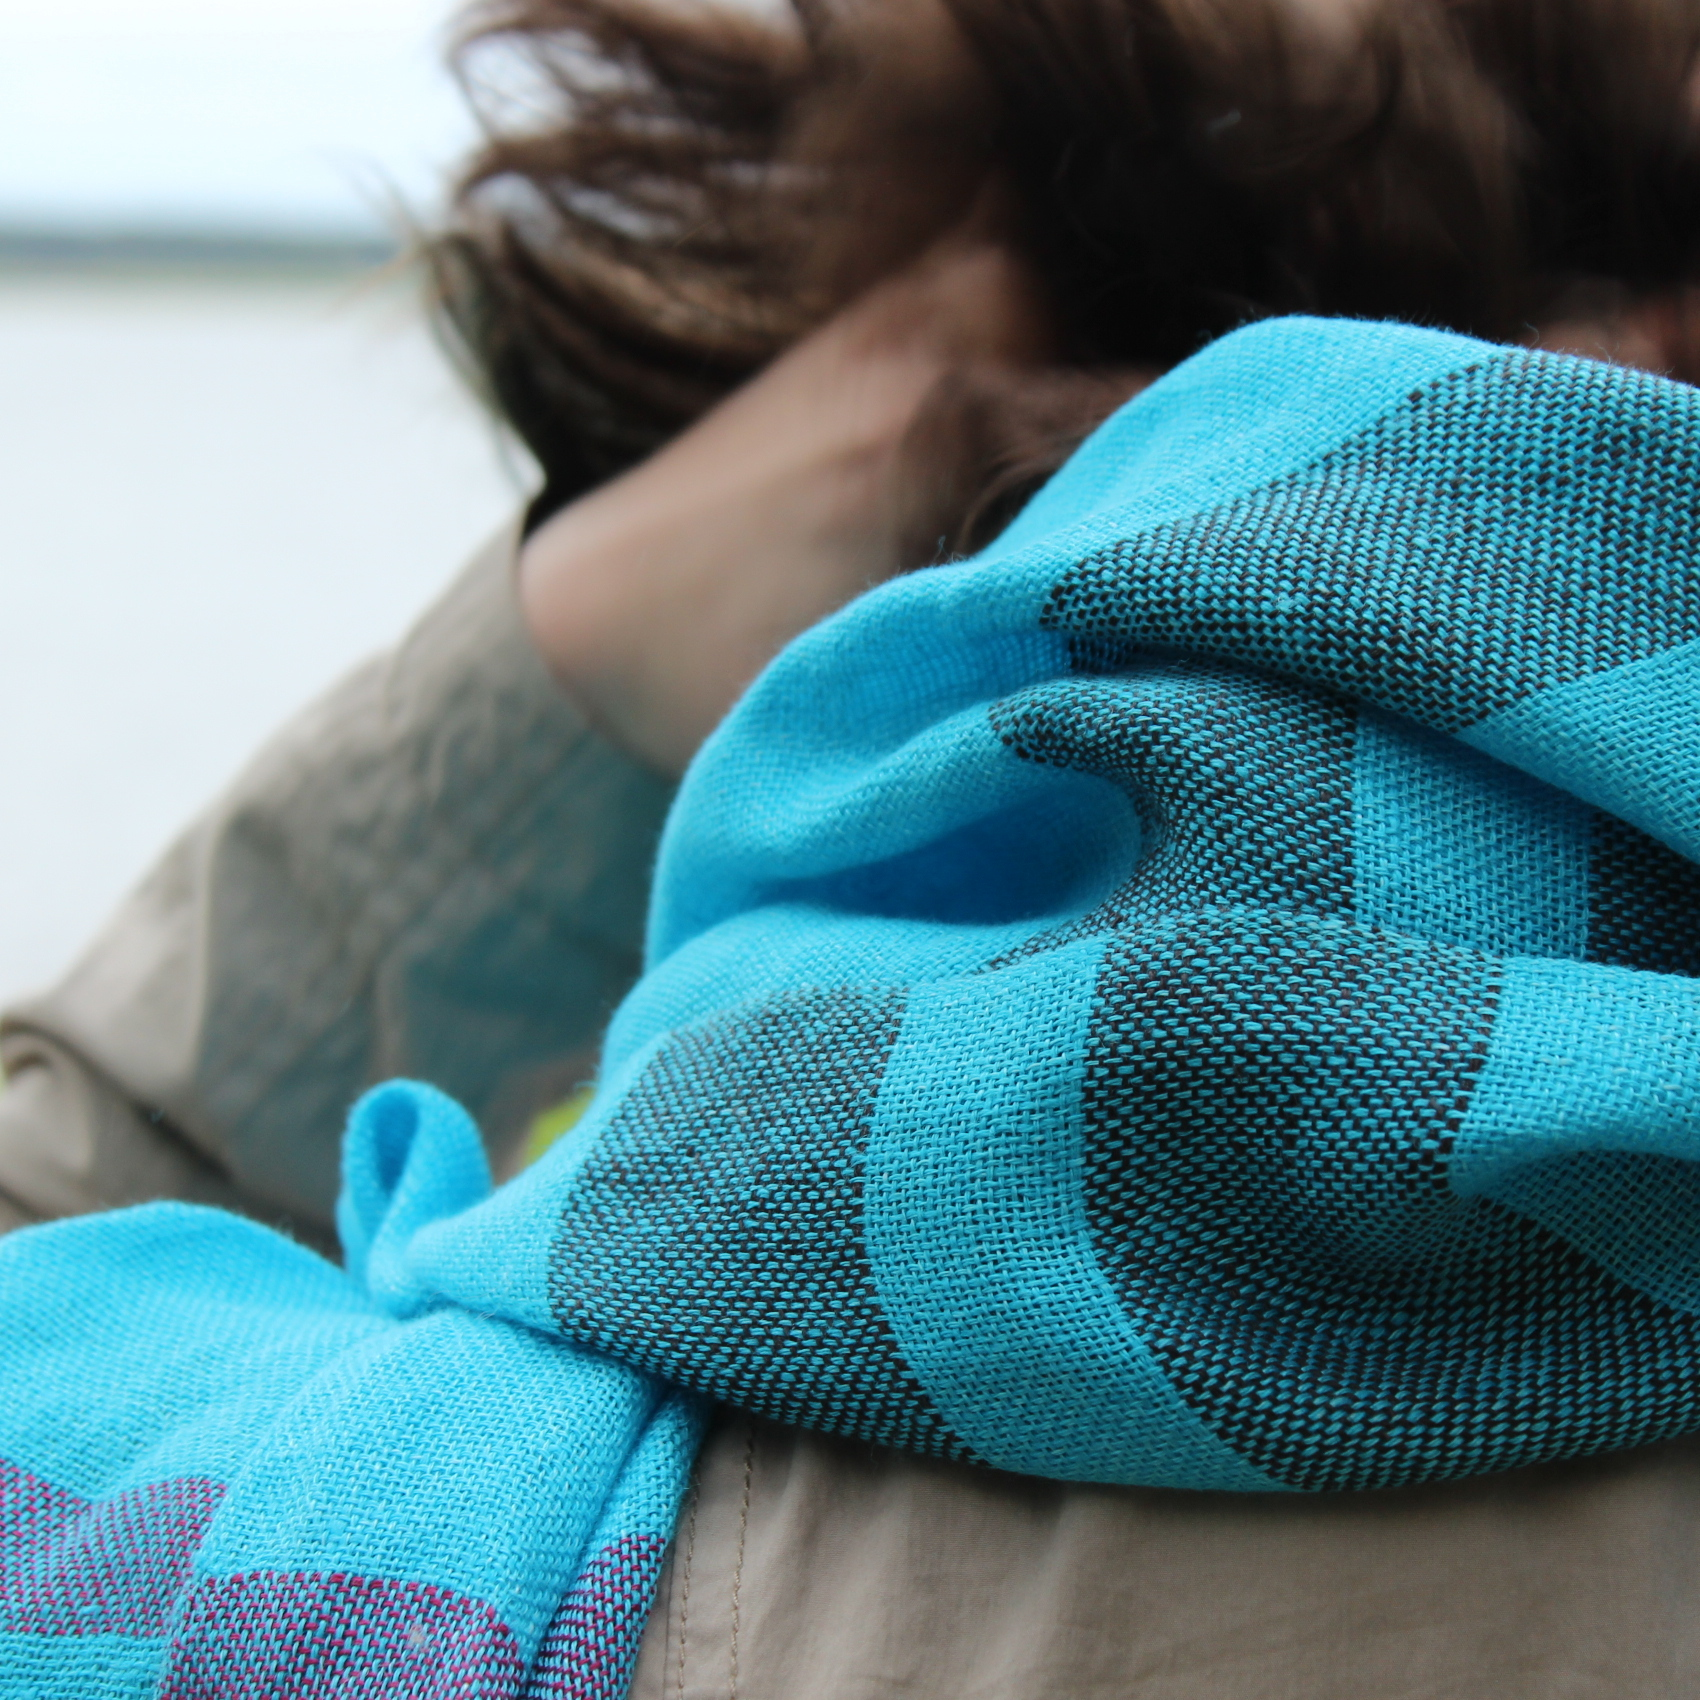 Unisex scarves for sping and summer.